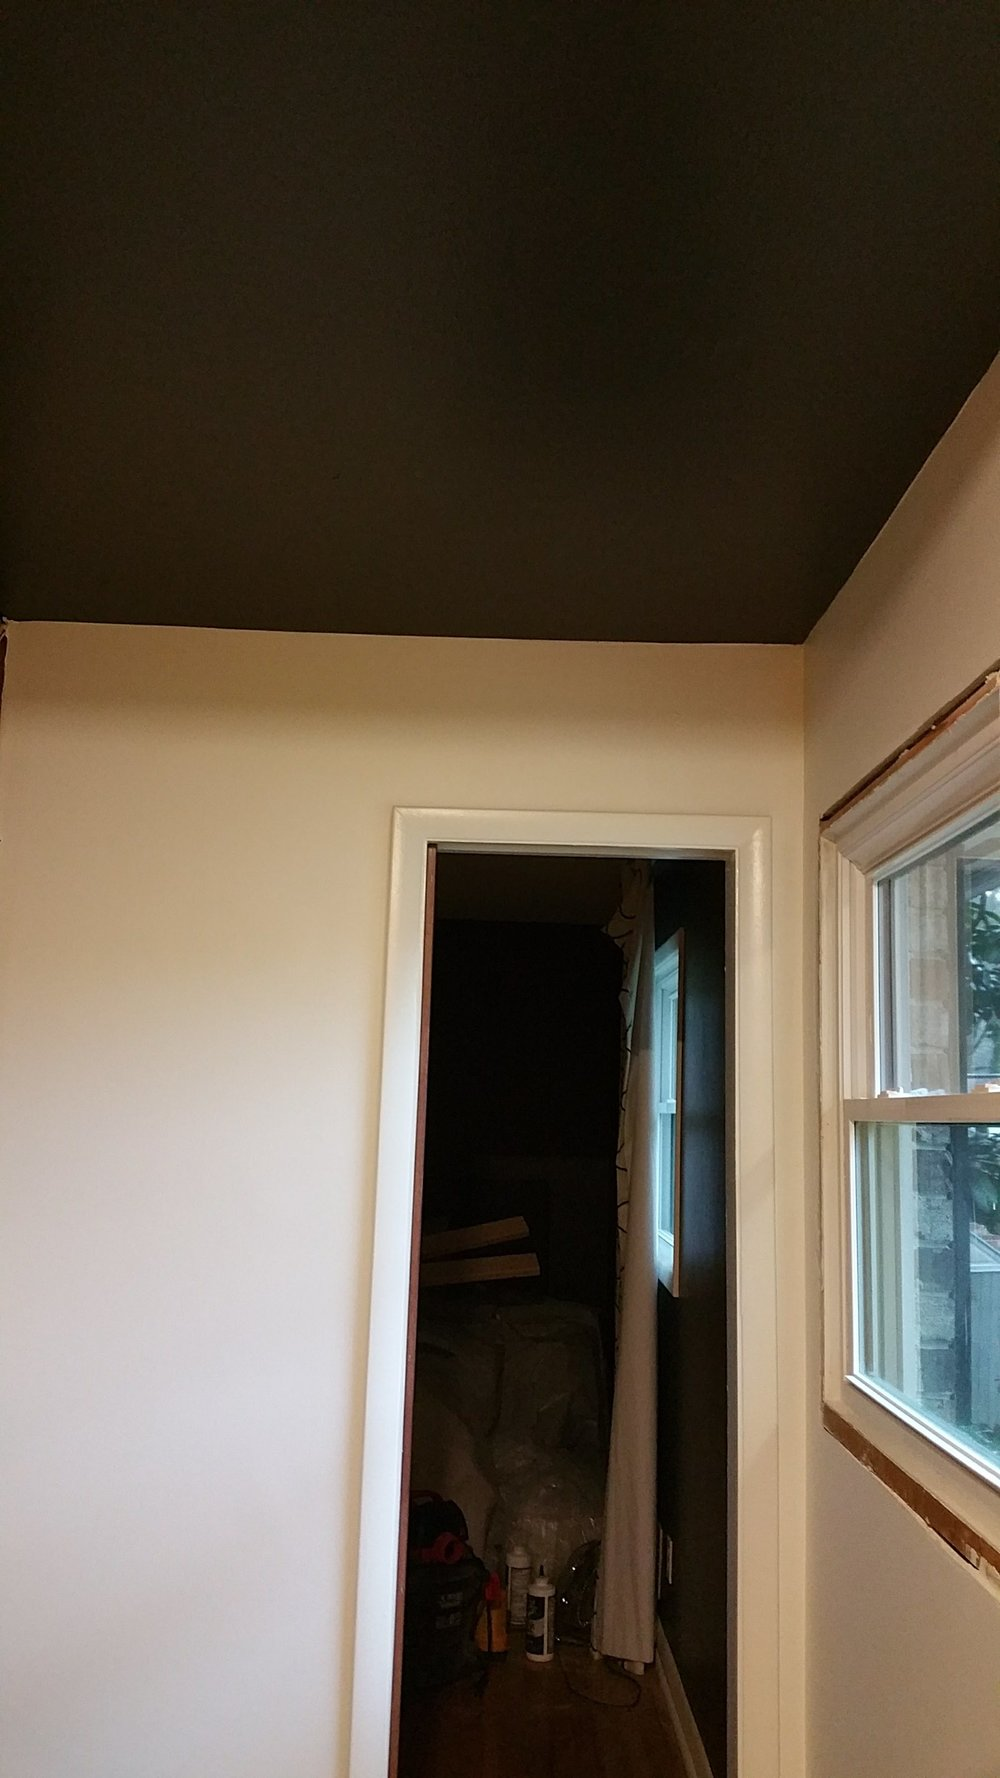 Painted ceiling in Sherwin Williams Iron Ore, semi-gloss finish